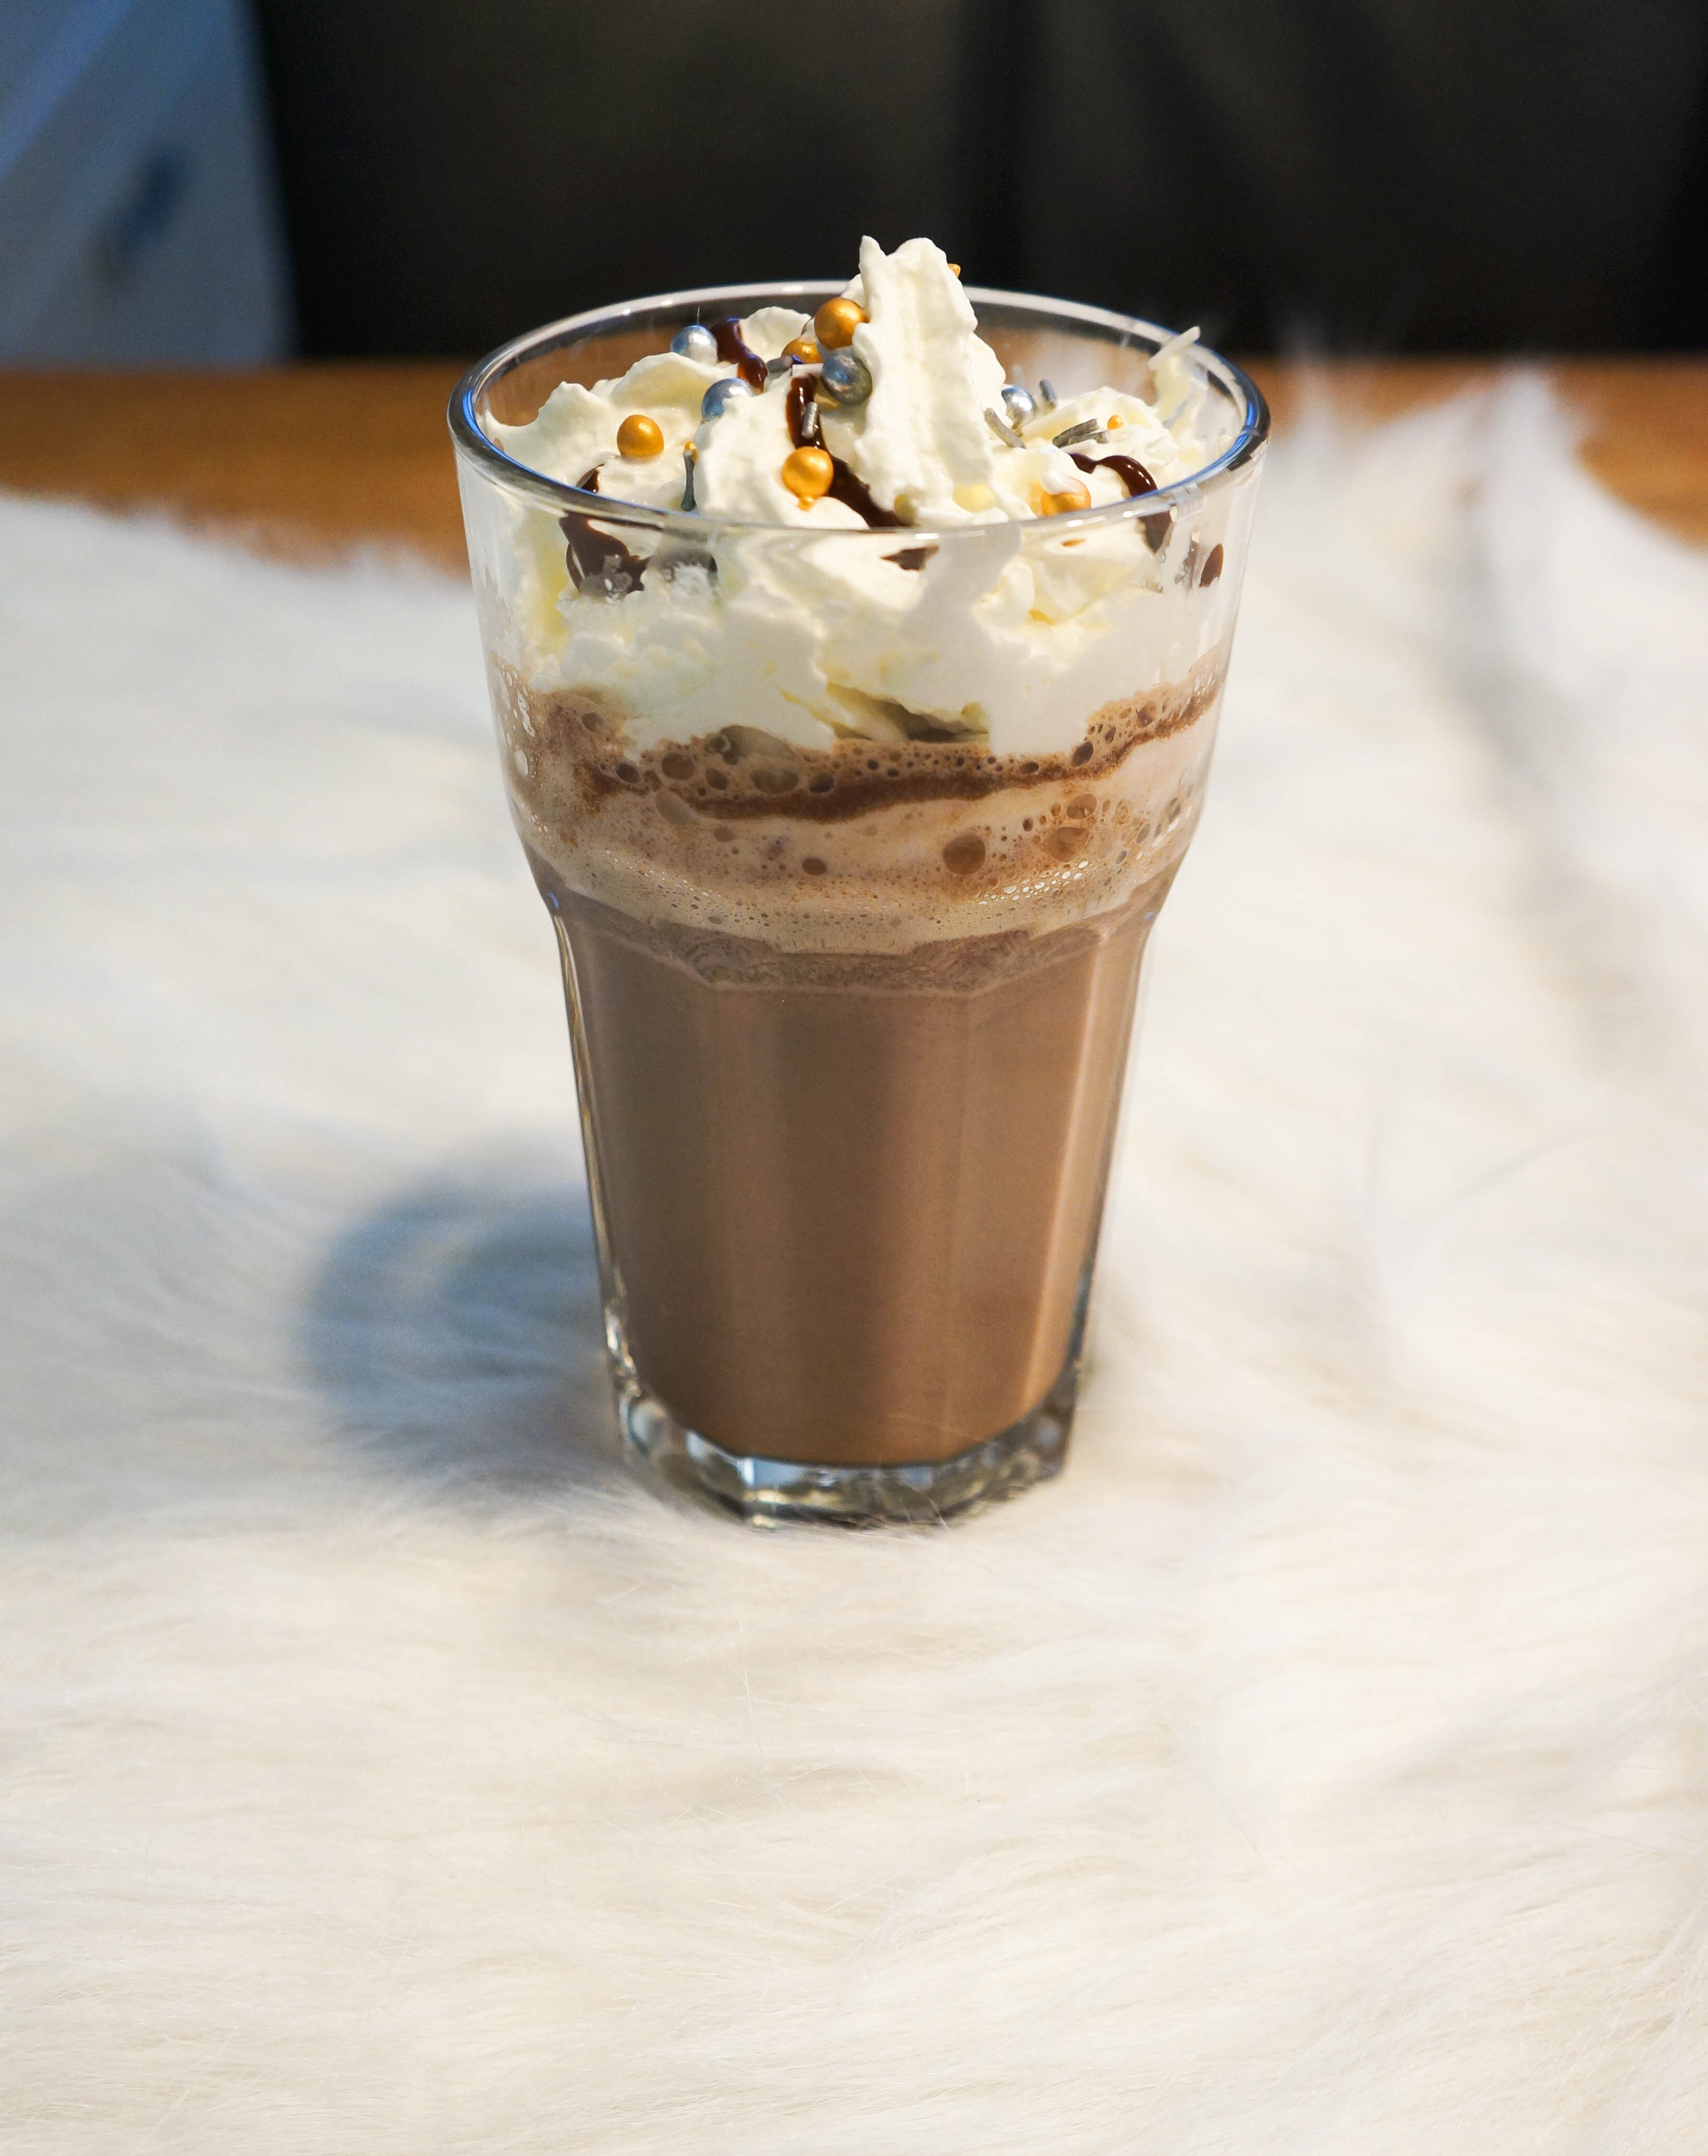 Delicious mint hot chocolate recipe Christmas style with glamour sprinkles and whipped cream. Get in the winter spirit with this hot chocolate recipe #hotchocolate #winter #christmas